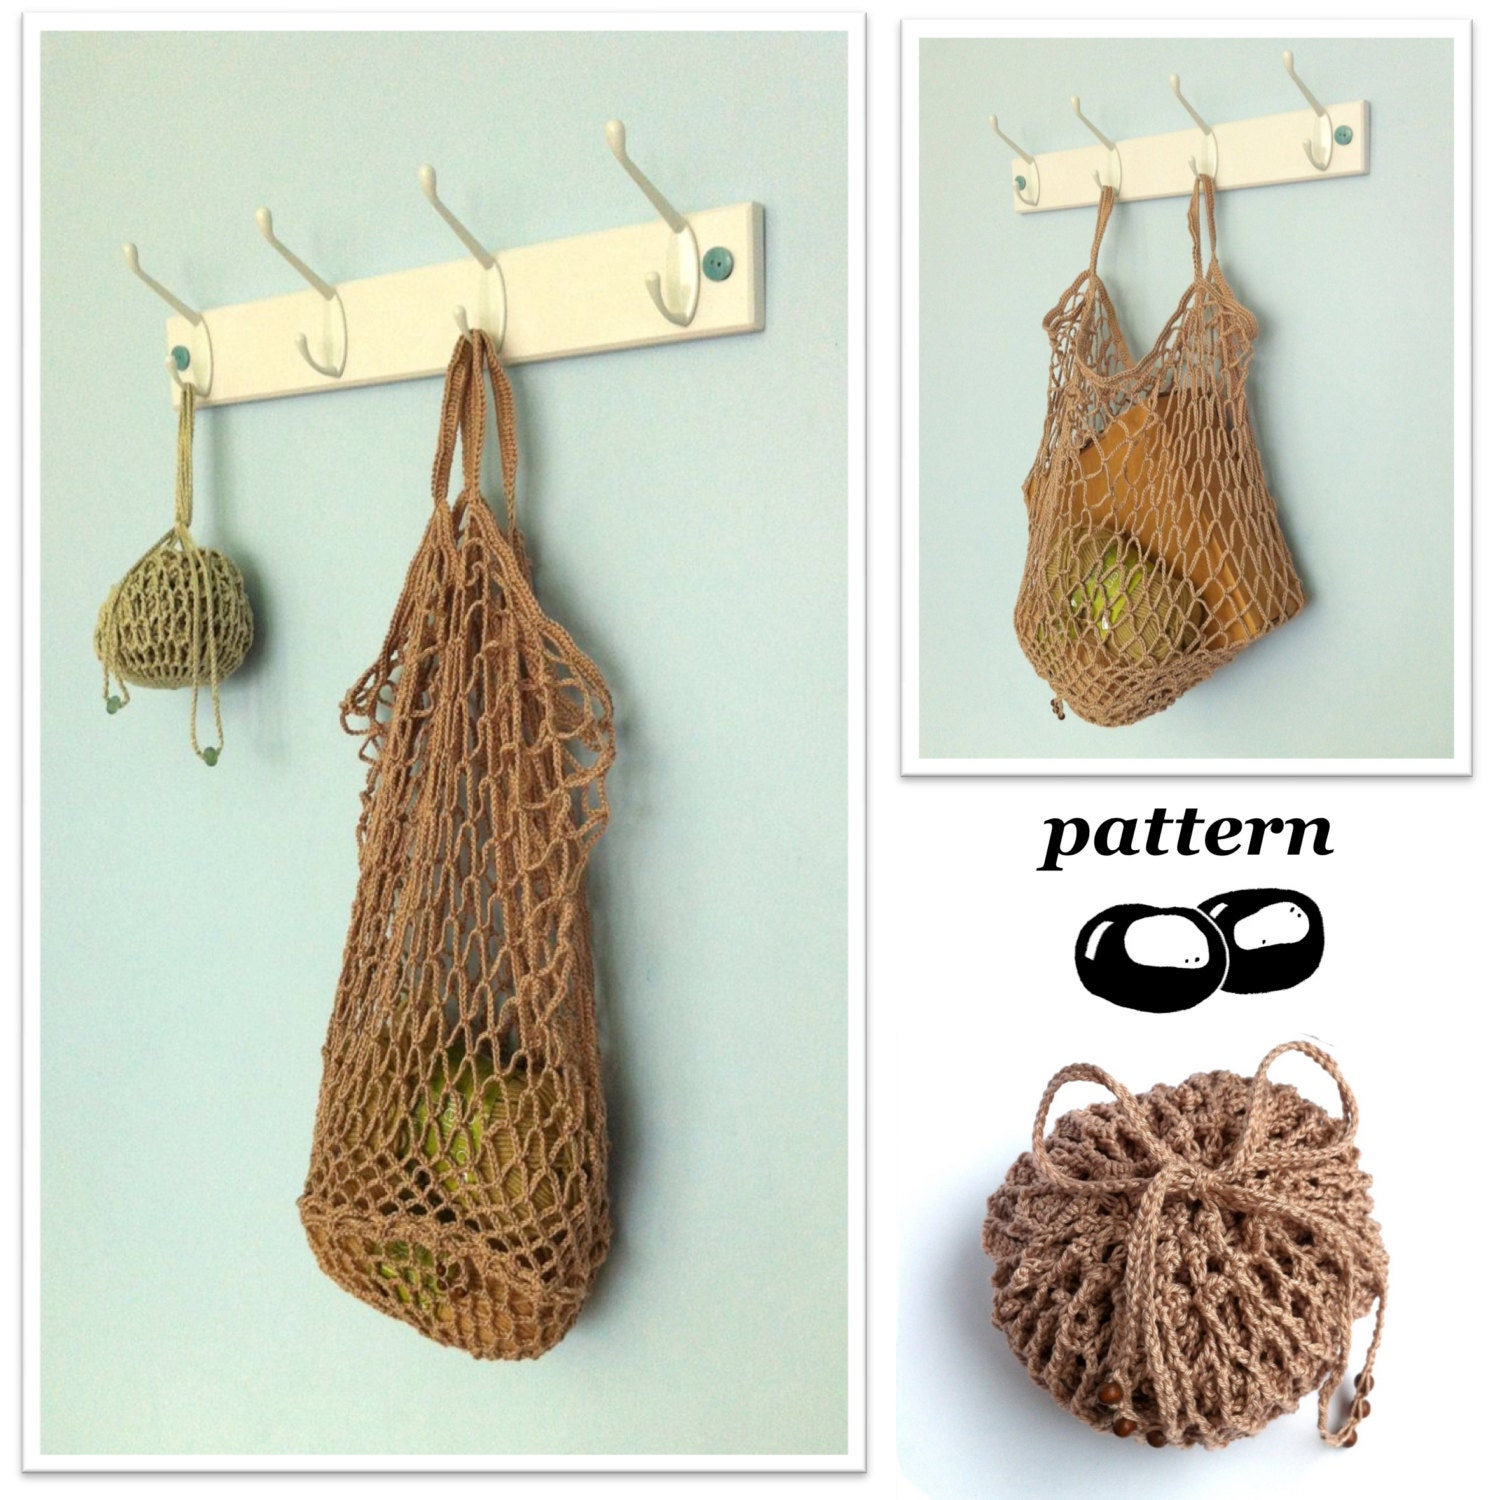 Crochet Mesh Bag Pattern : Crochet Bag Pattern / String Bag Pattern / by LittleConkers